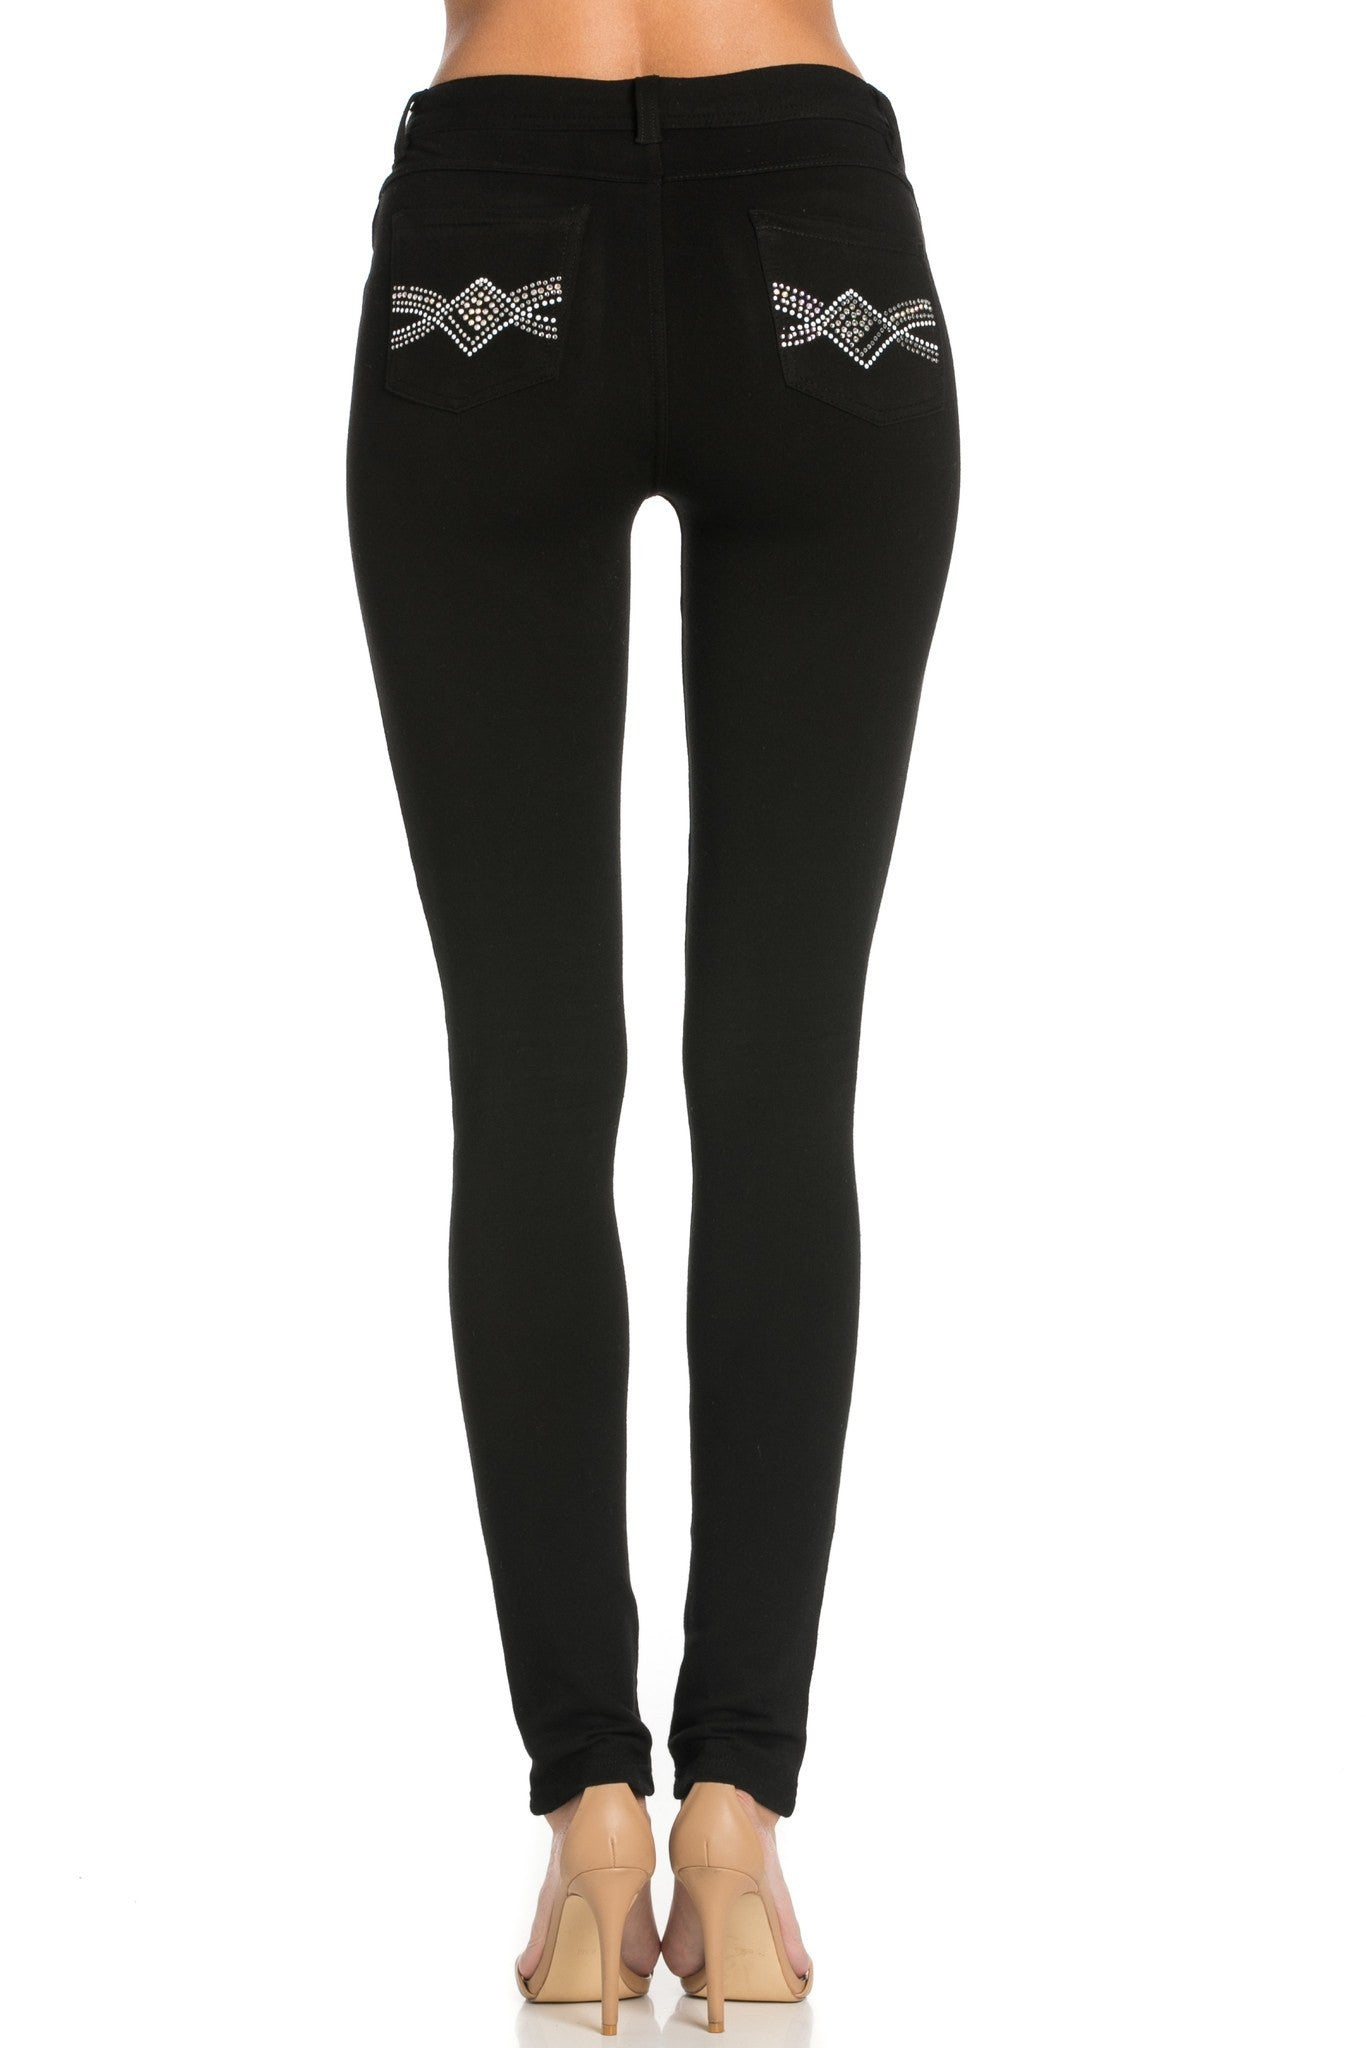 Embellished Stretch Skinny Knit Jegging Pants (Diamond) - Poplooks